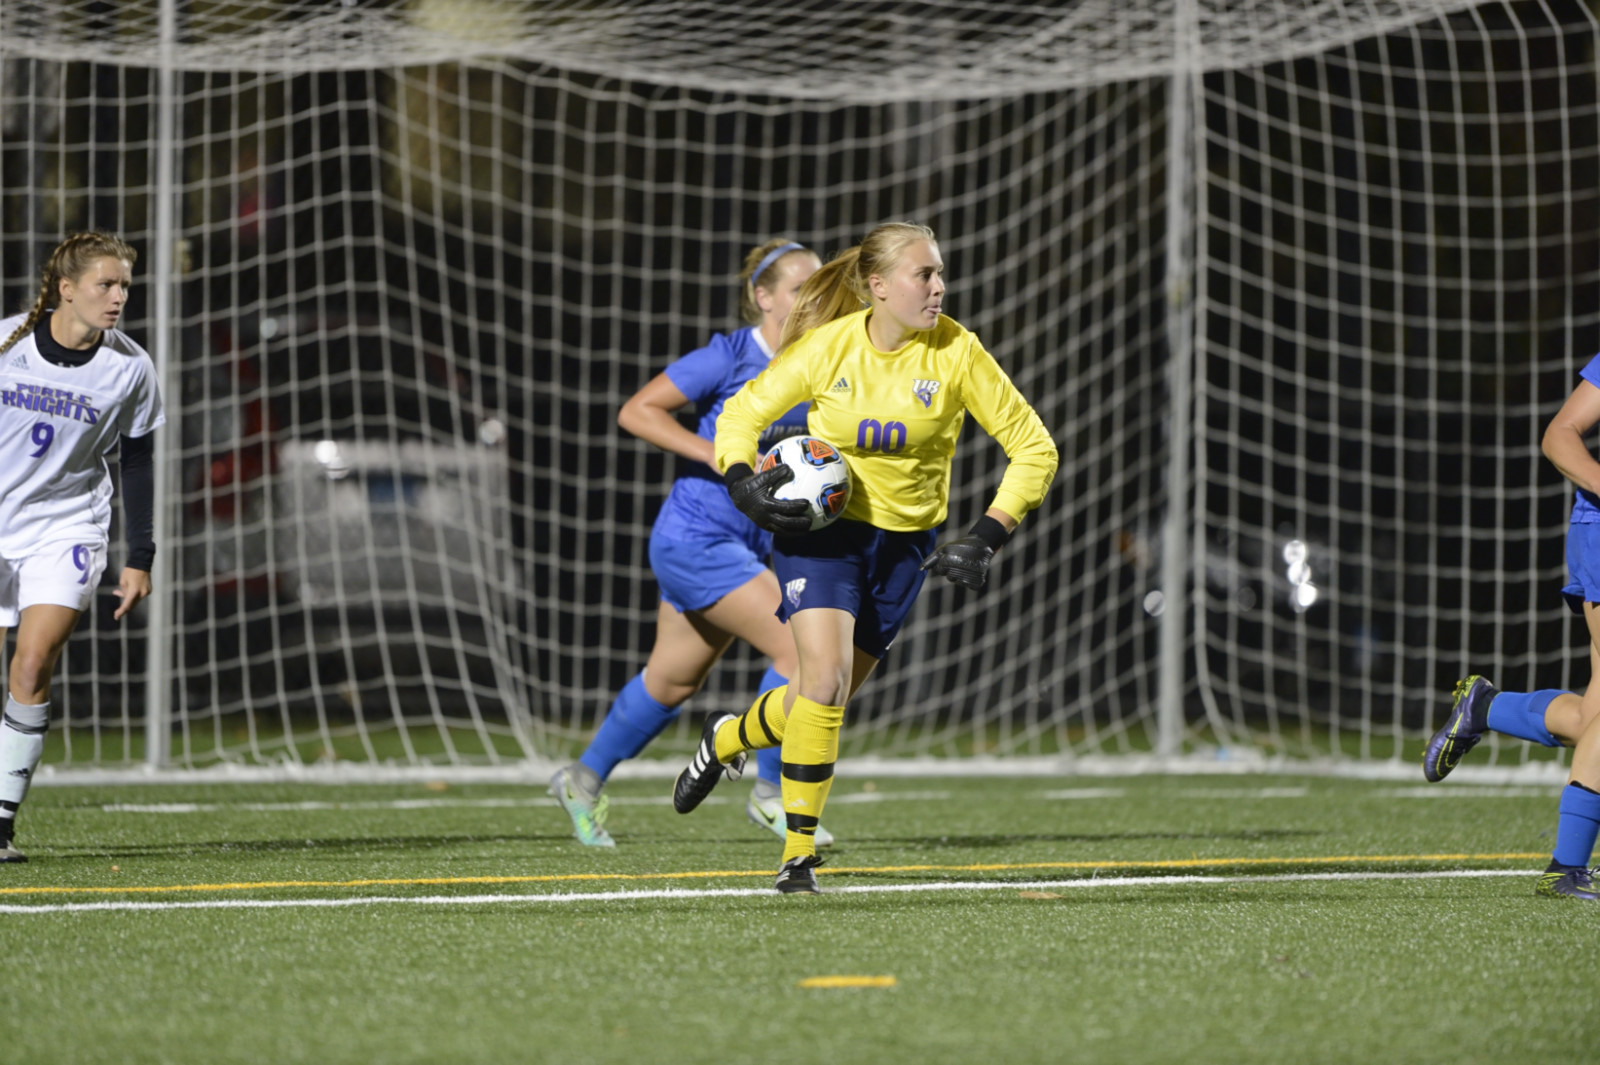 Bridgeport Women's Soccer Opens California Trip With 0-0 Double OT Draw Versus Cal State Monterey Bay